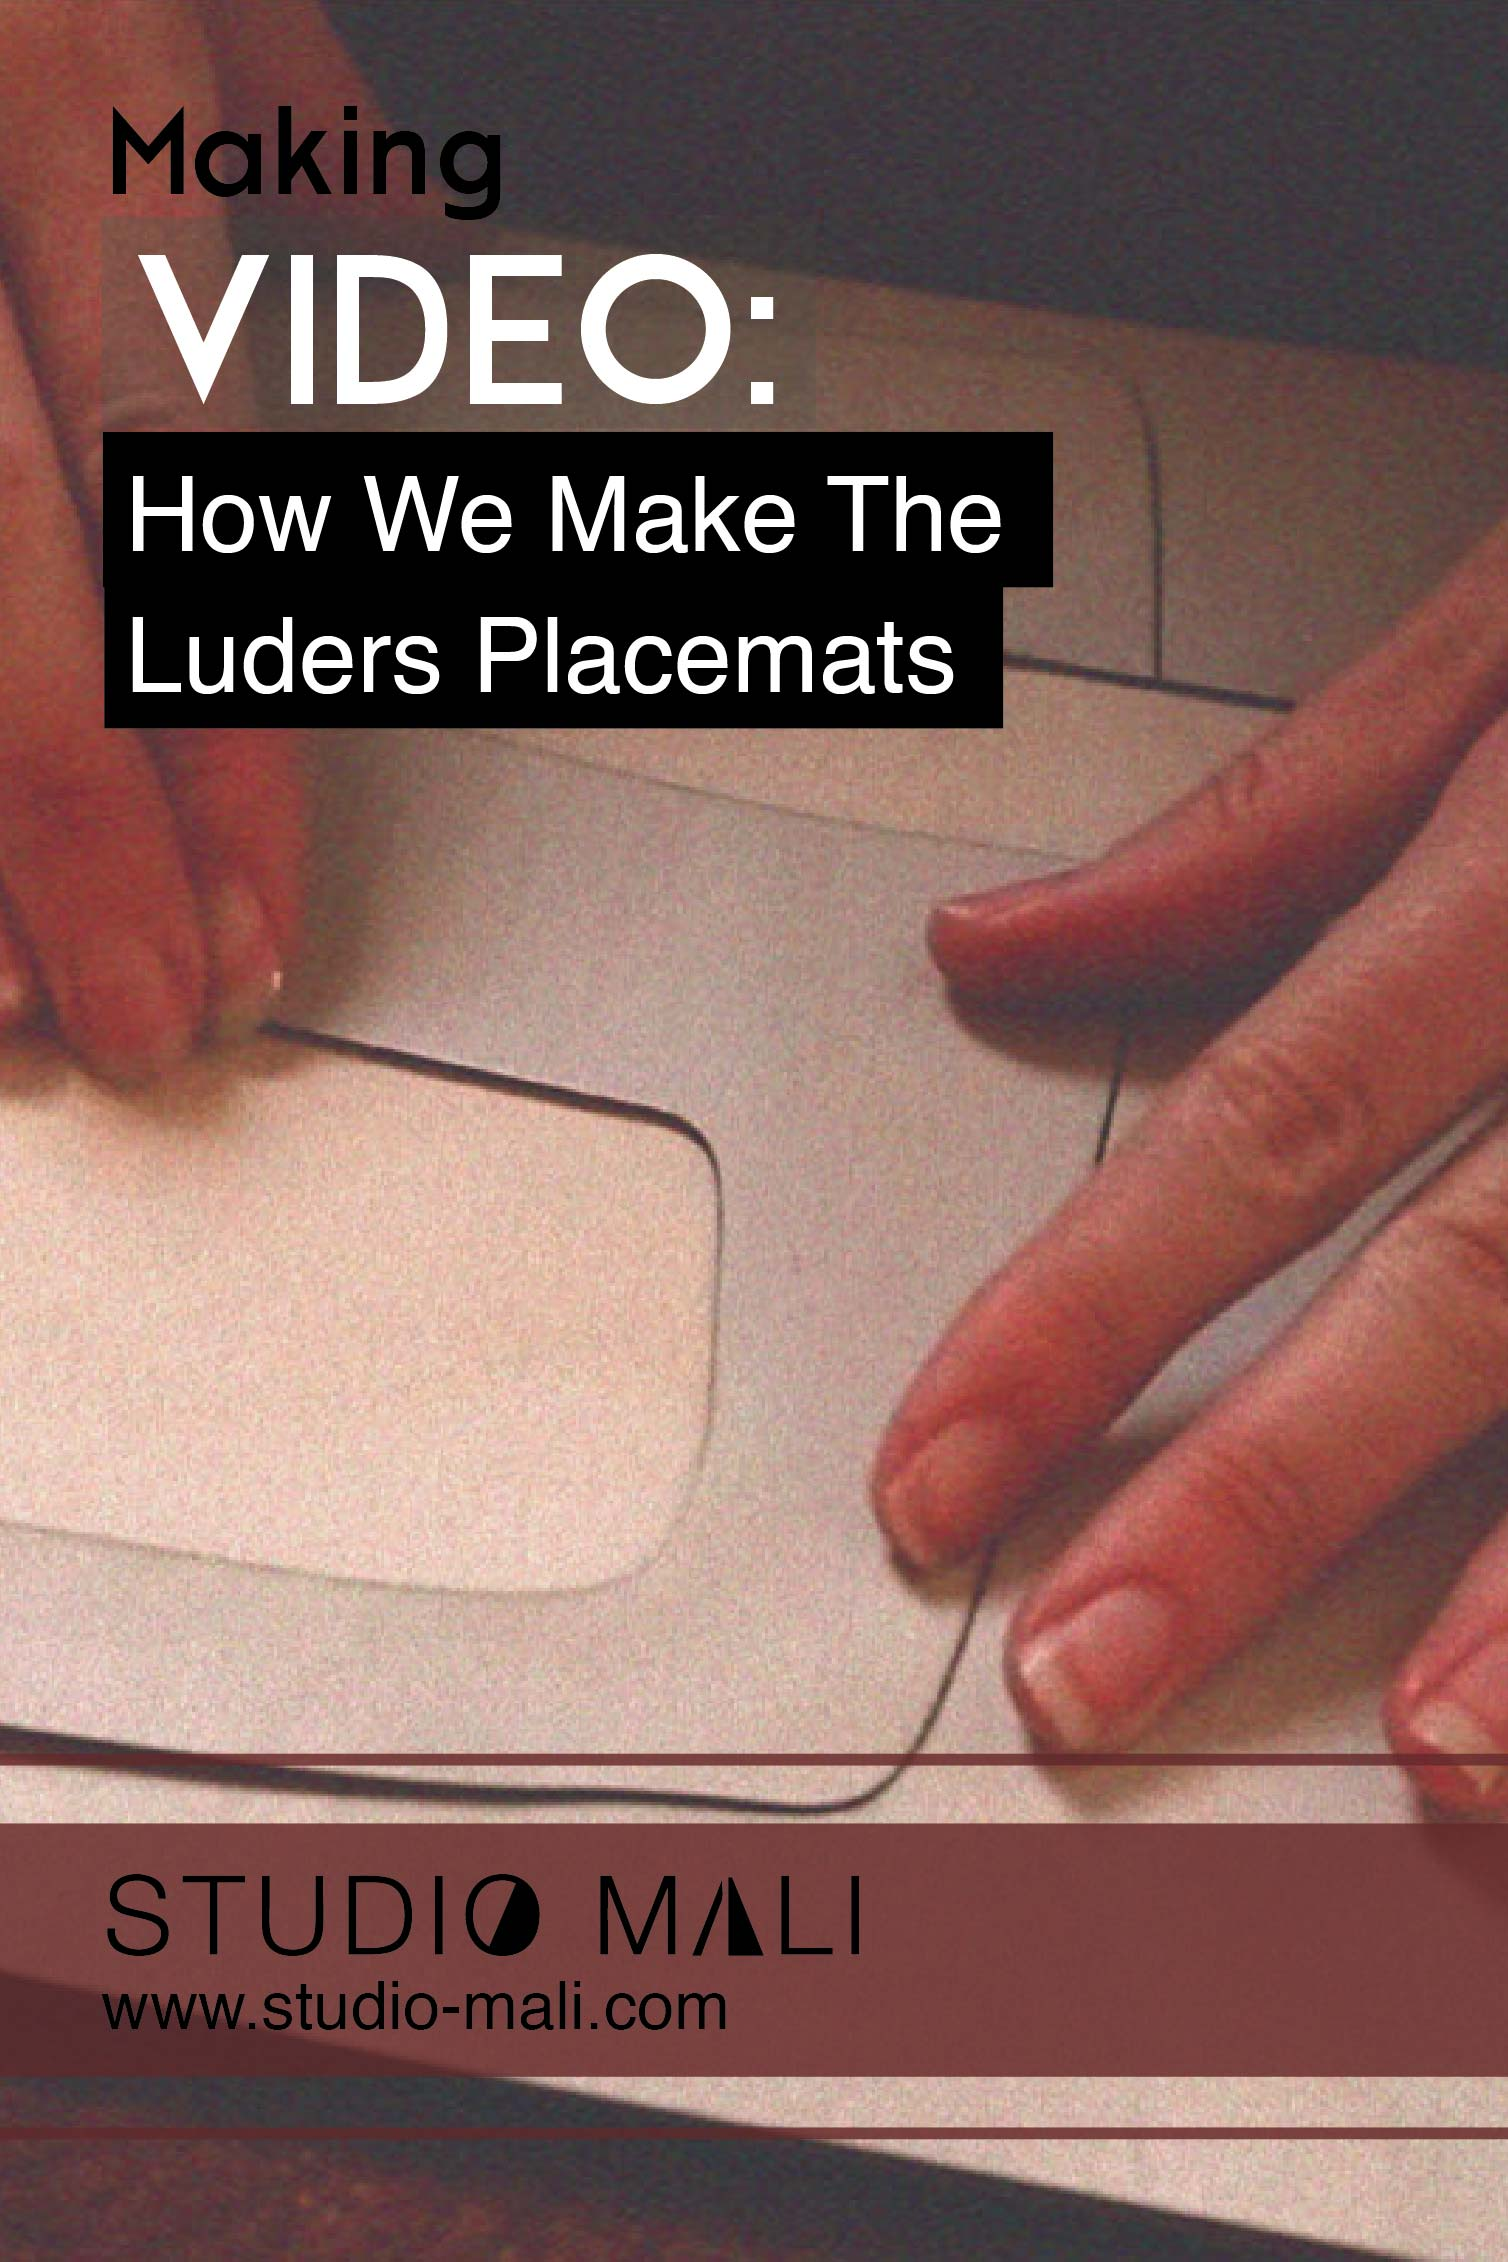 Video- How We Make The Luders Placemats, By Studio Mali.jpg